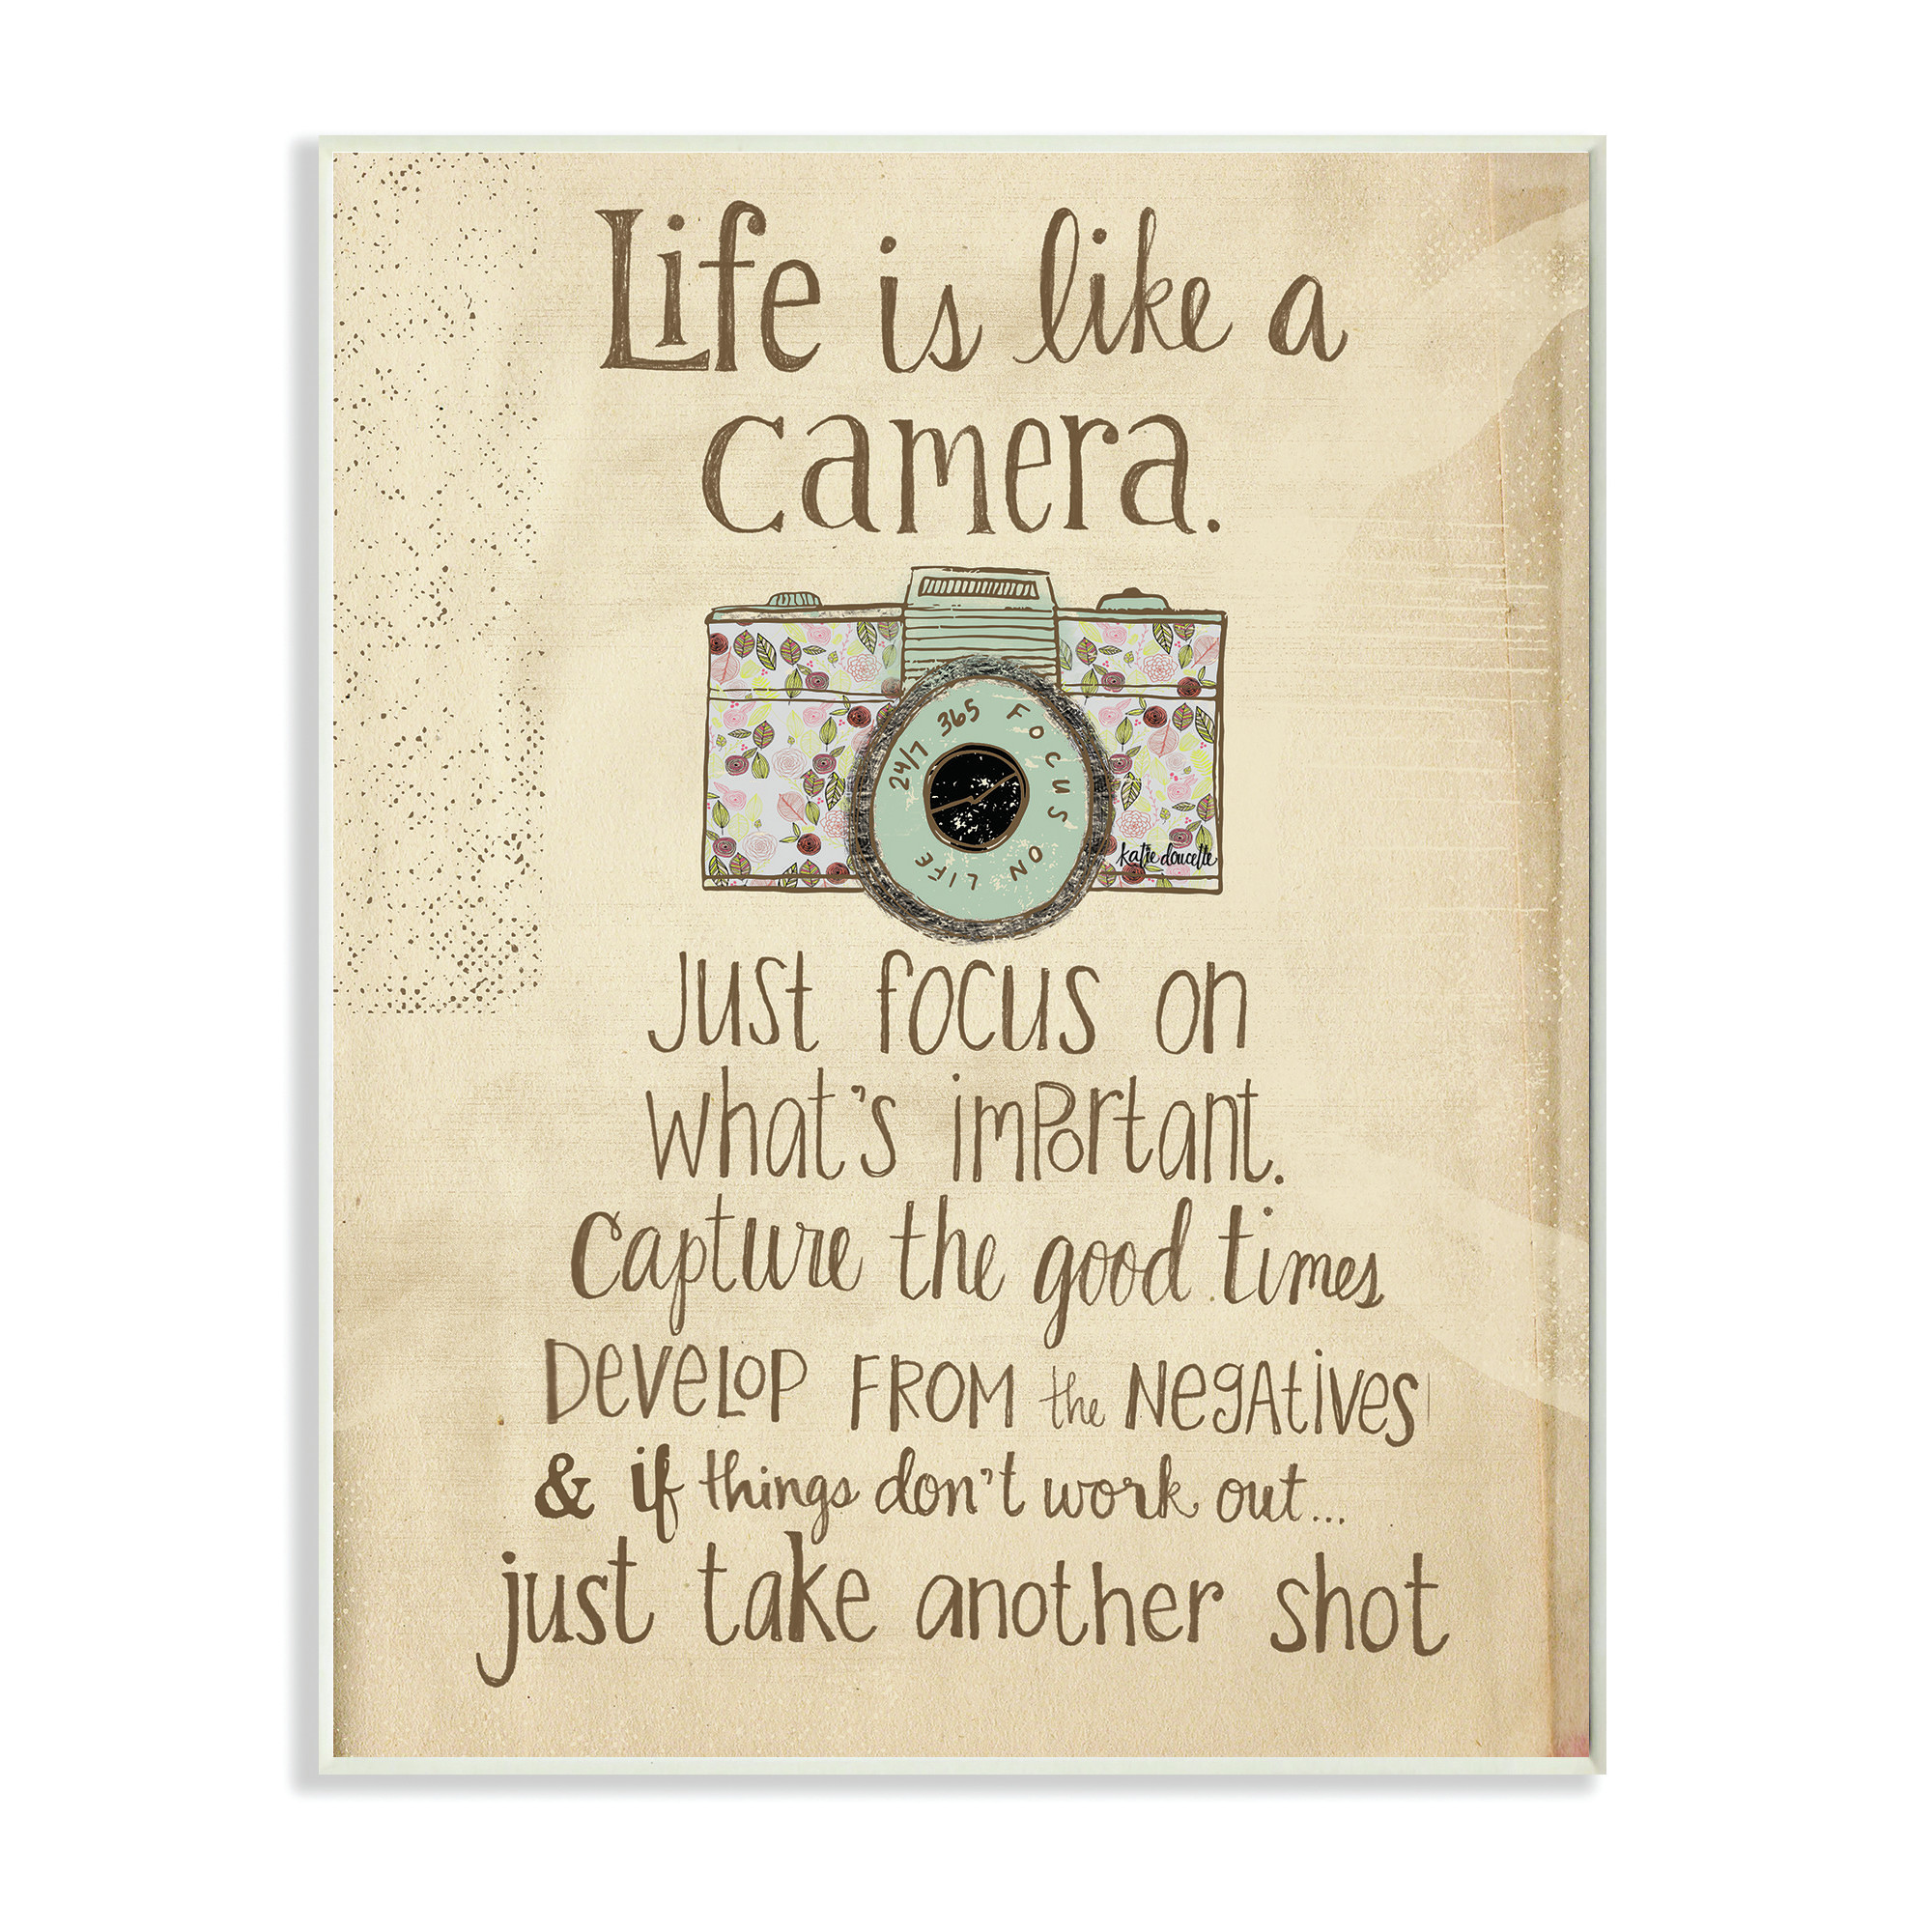 Best ideas about Inspirational Wall Art . Save or Pin Stupell Industries Life Is like a Camera Inspirational Now.